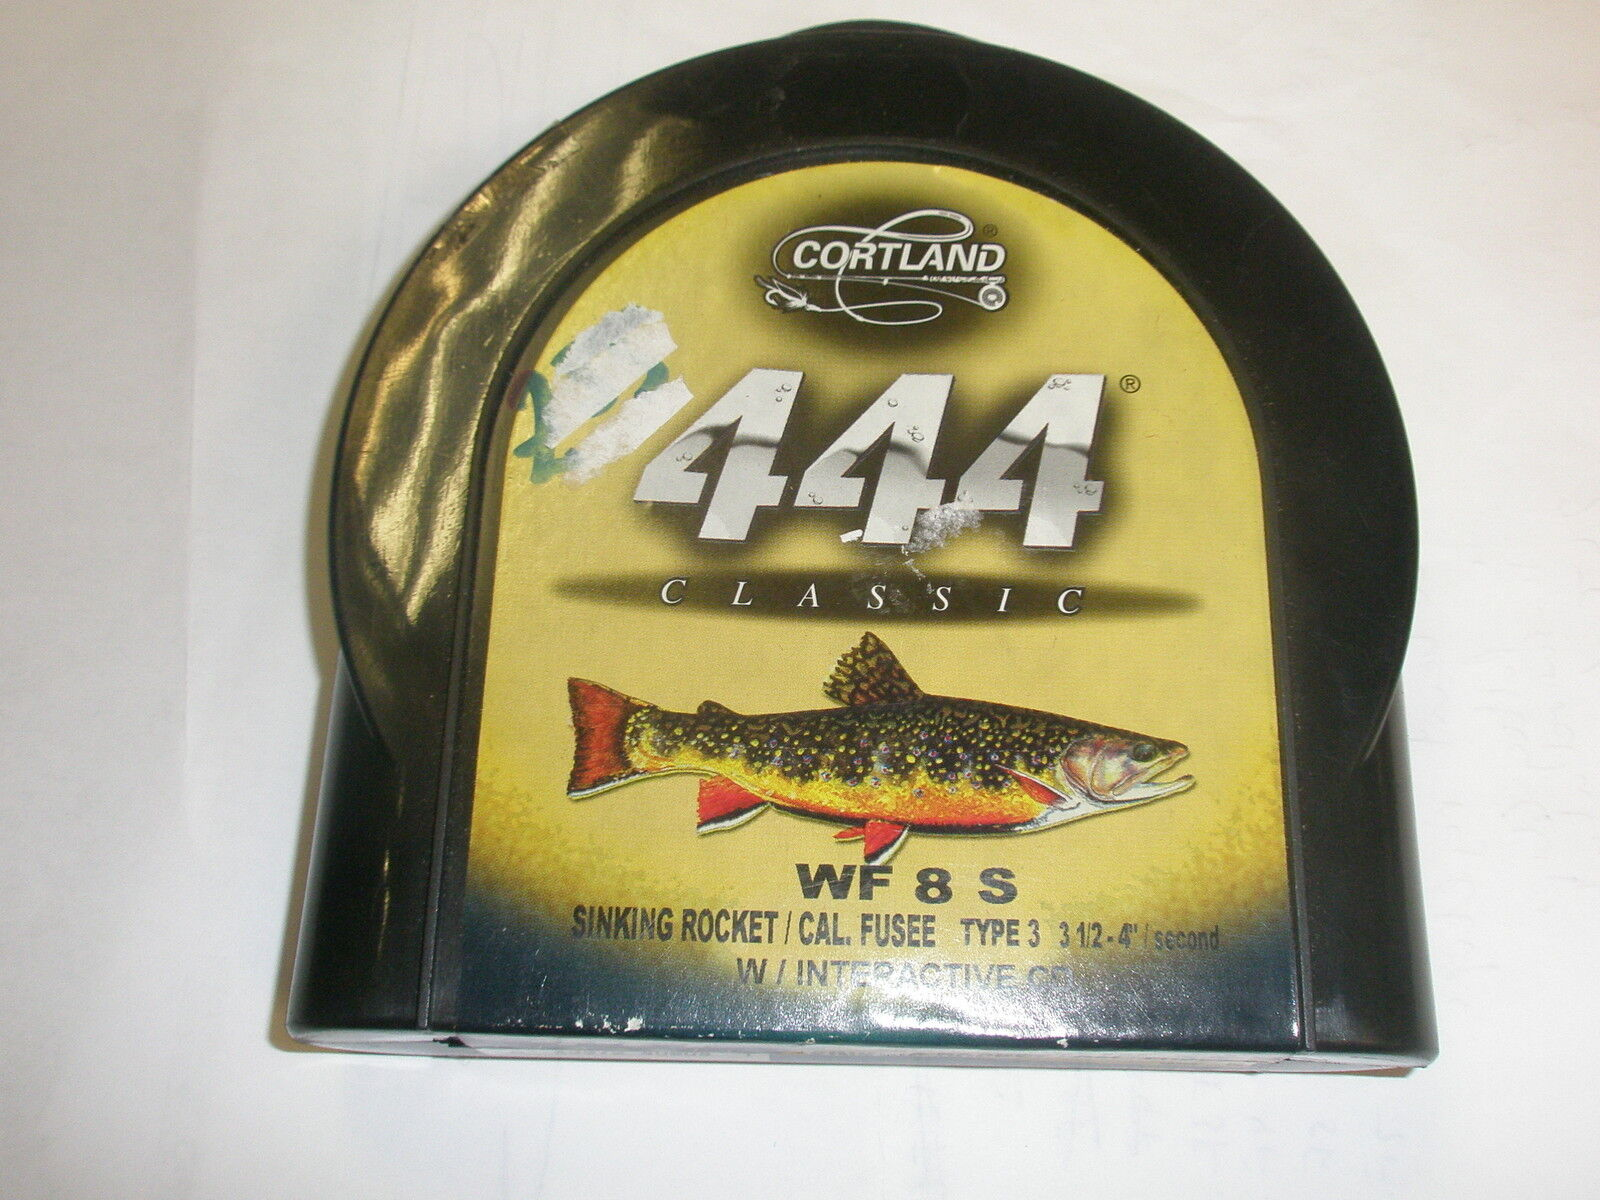 Cortland 444 Classic Med. Floating Flyline WF8S Type 3 Med. Classic Braun Fly fishing 4e1365